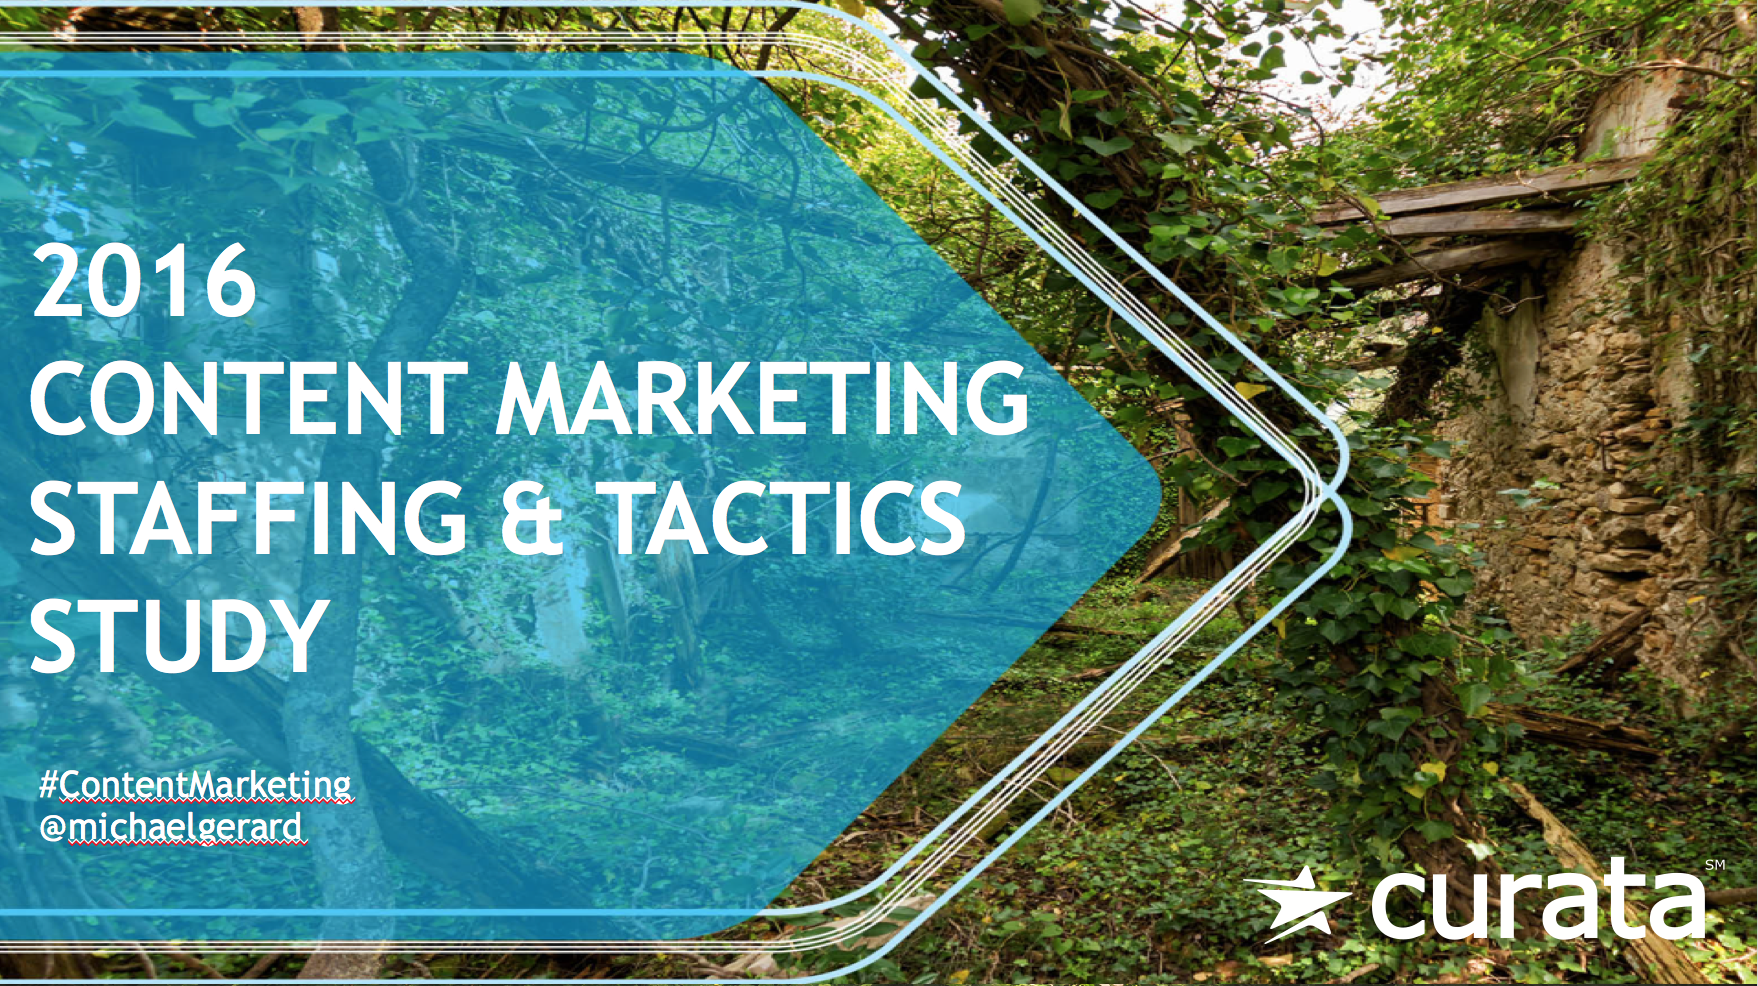 2016 Content Marketing Staffing & Tactics Study